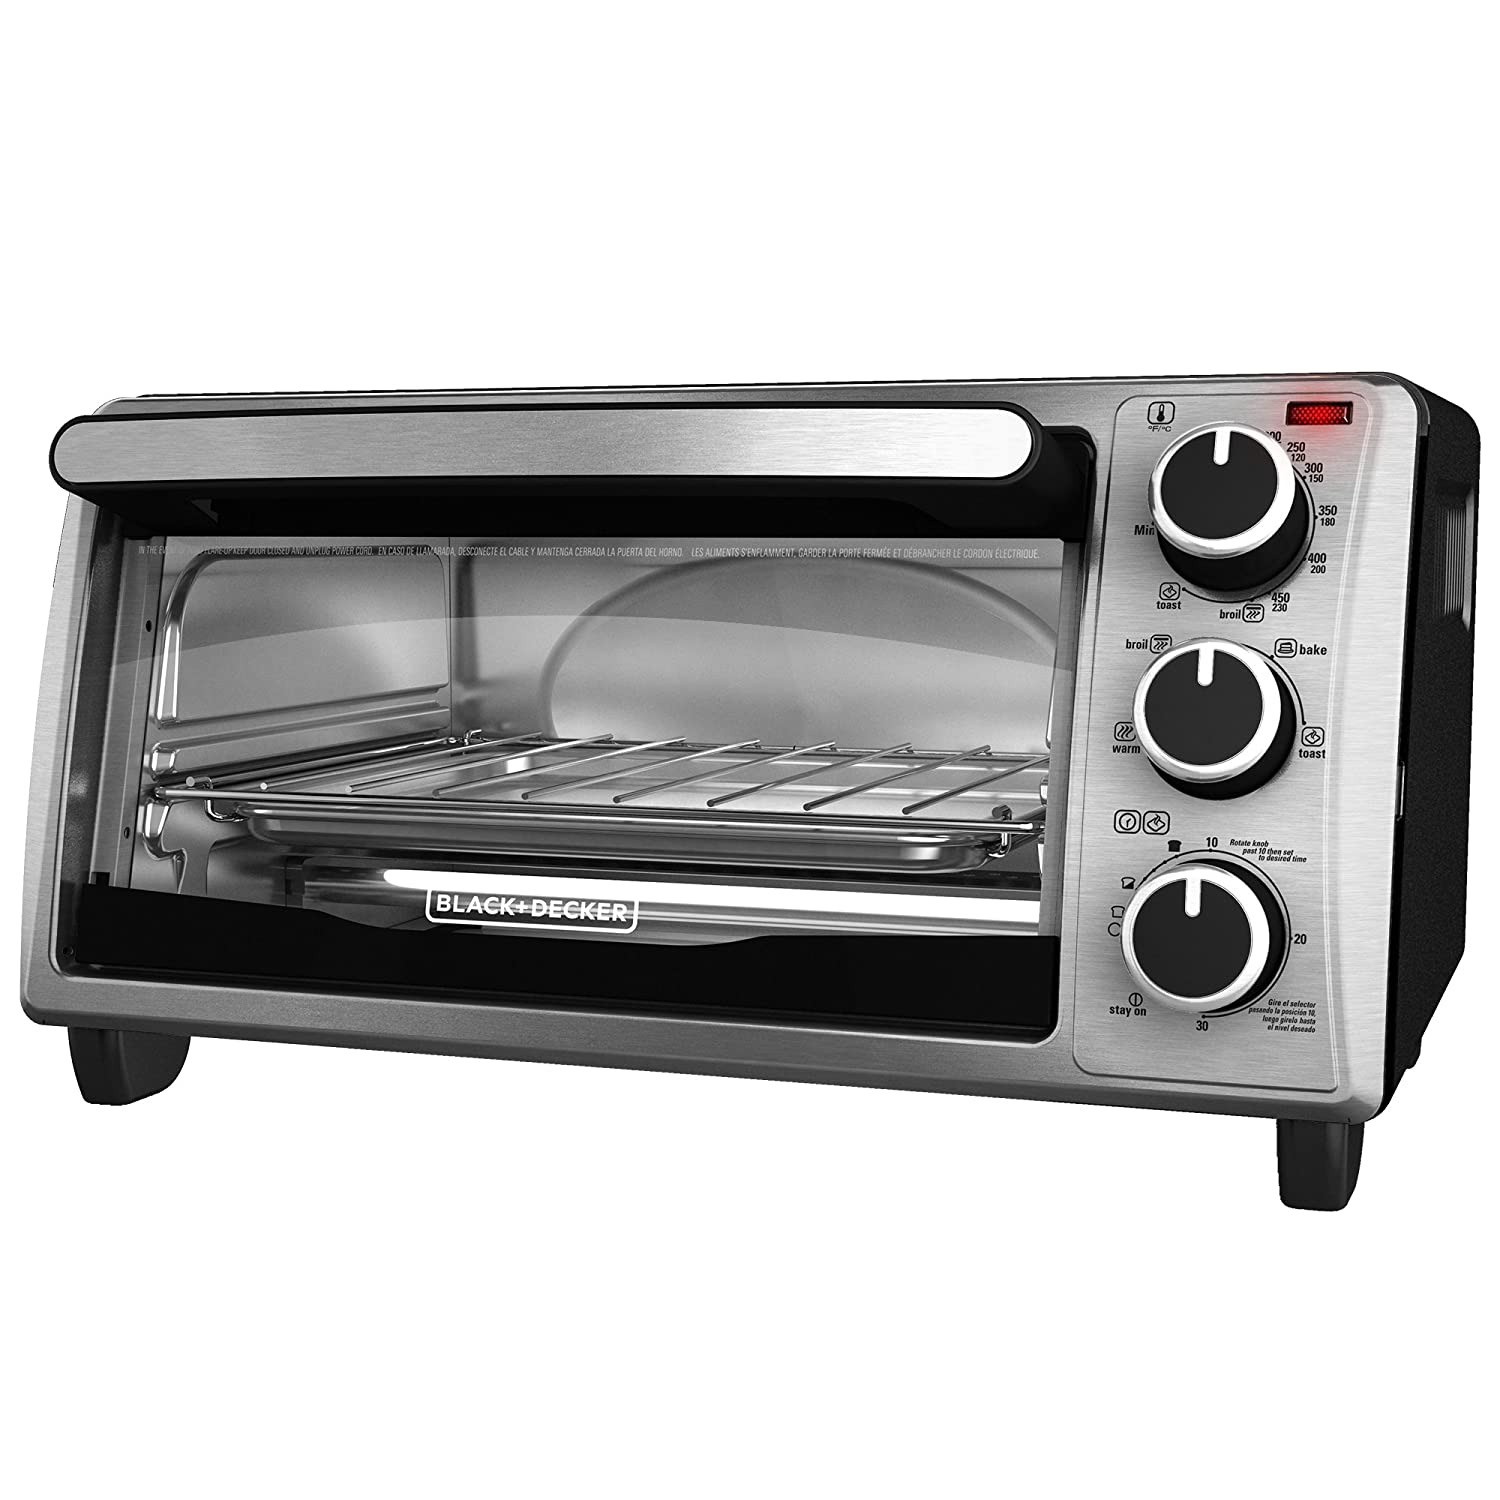 BLACK+DECKER TO1303SB 4-Slice Toaster Oven, Stainless Steel